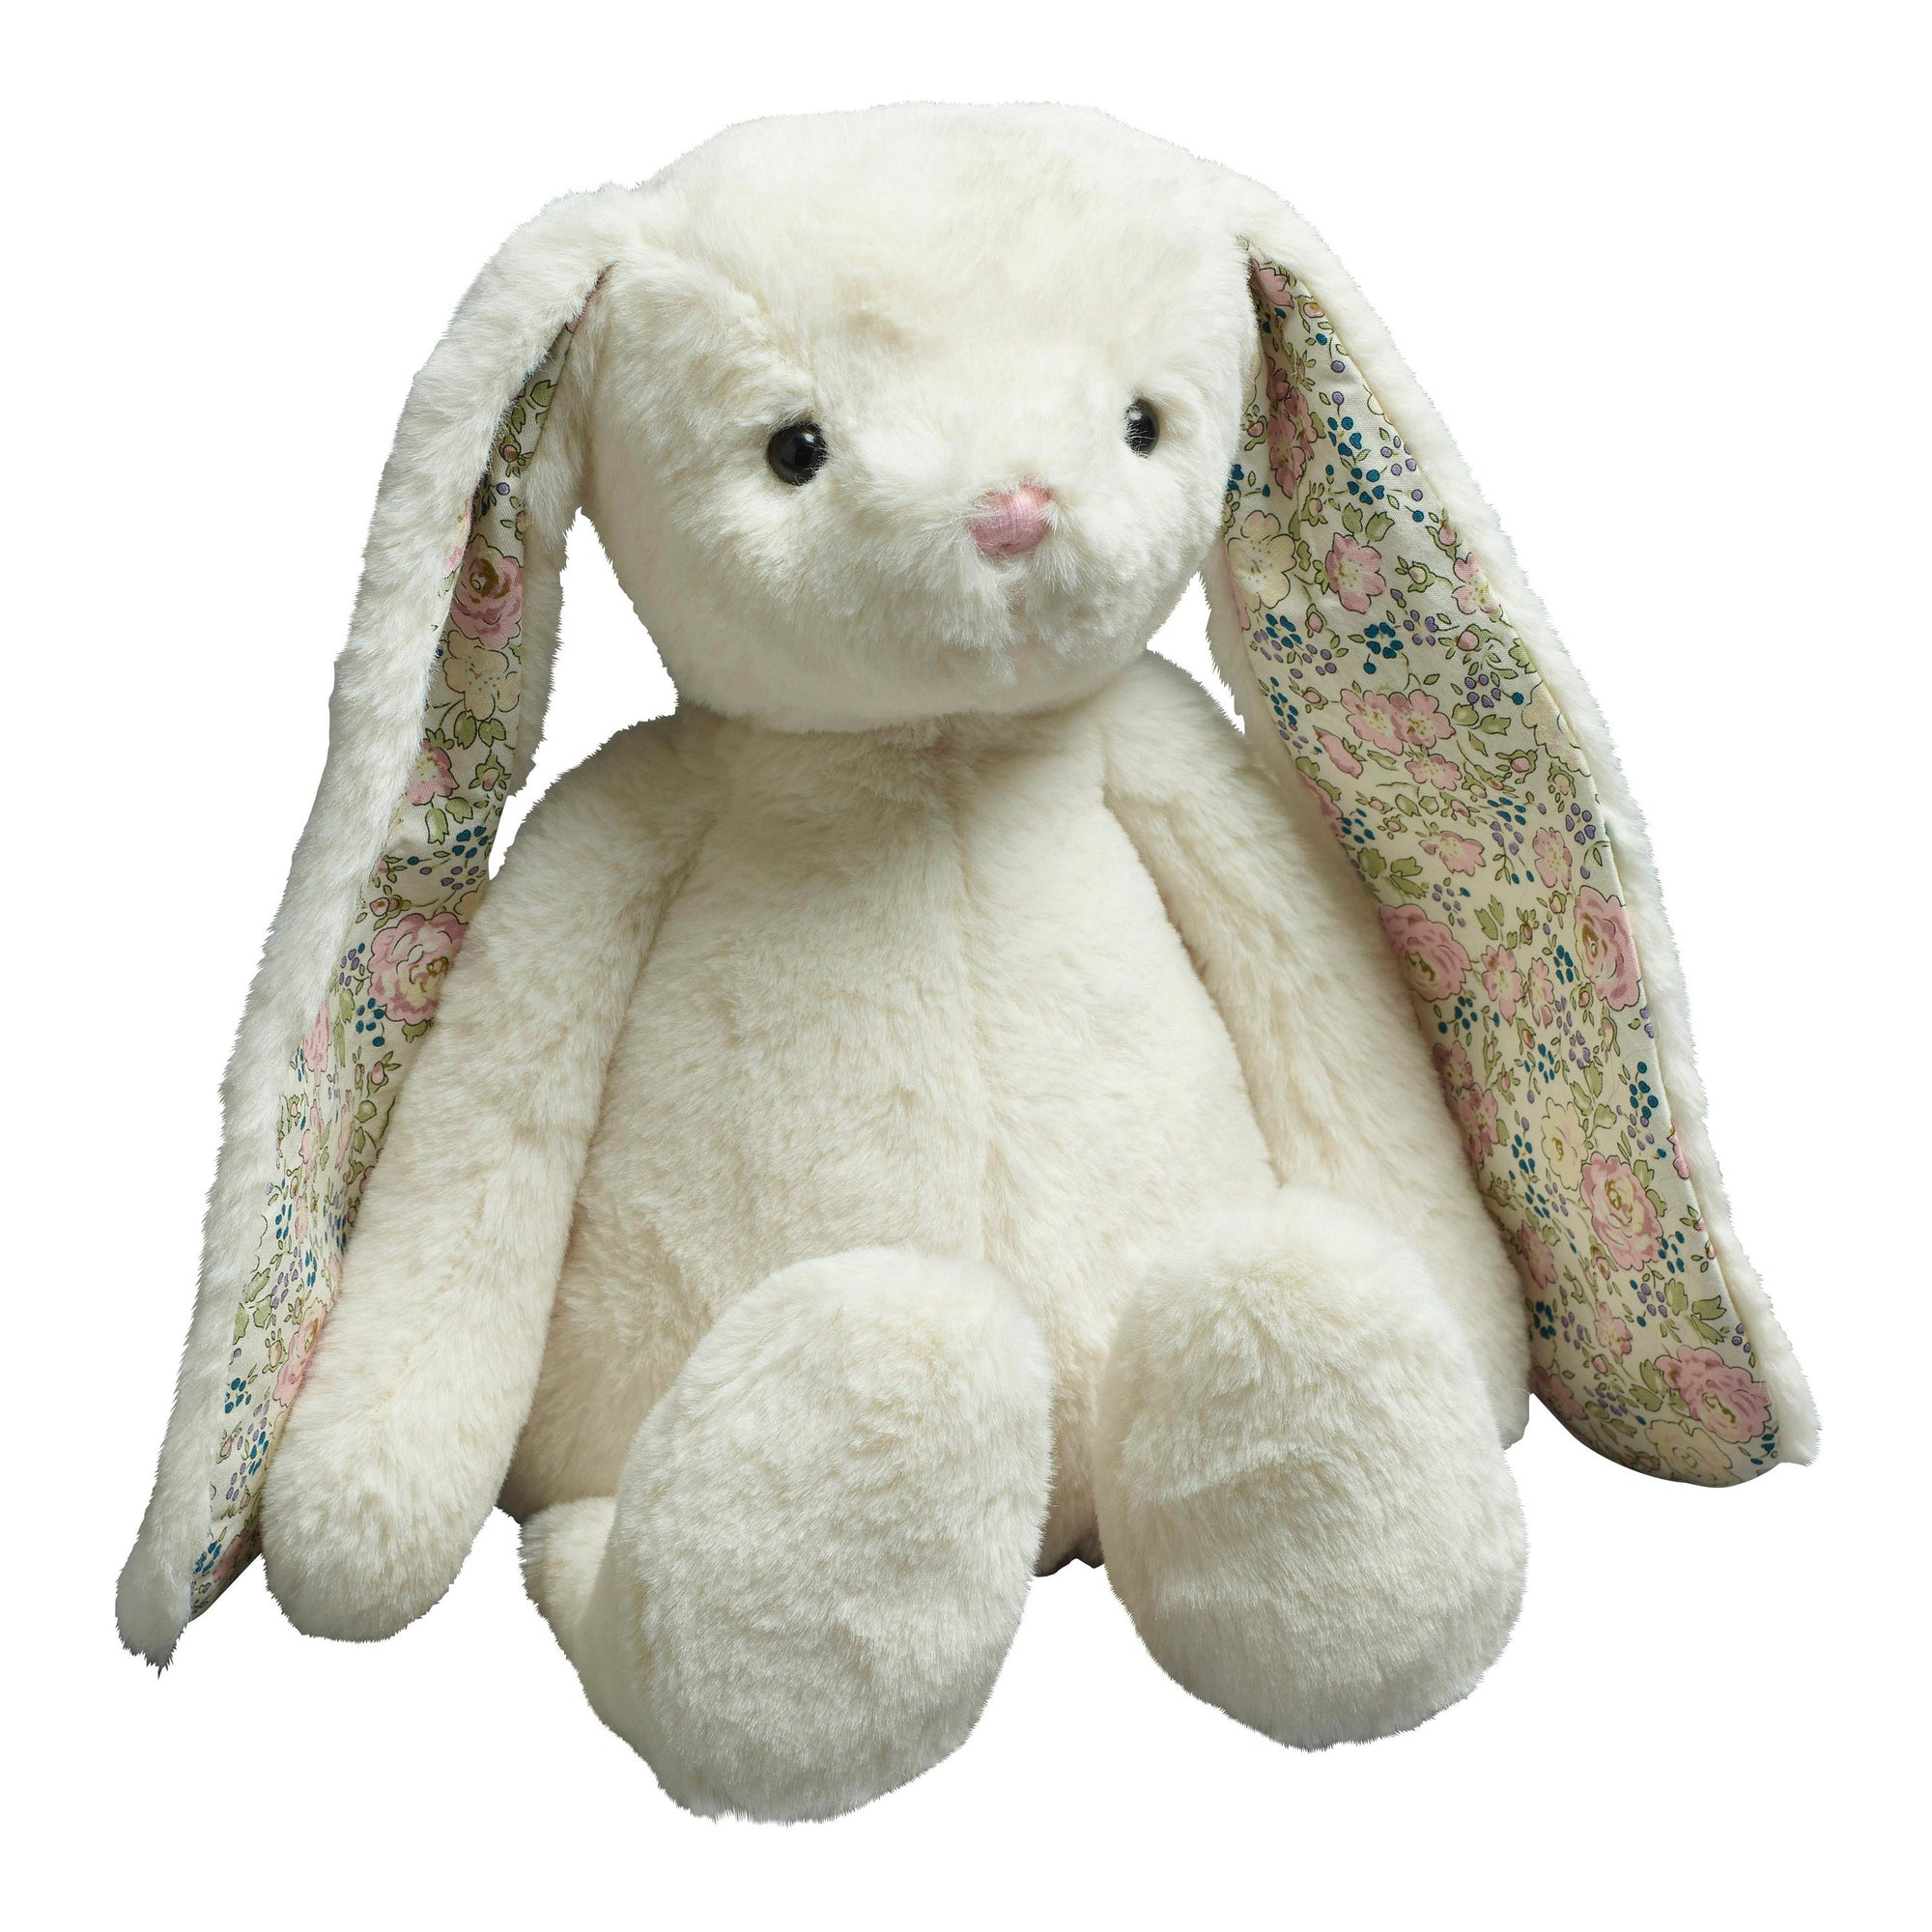 PLUSH BUNNY WITH FLORAL EARS